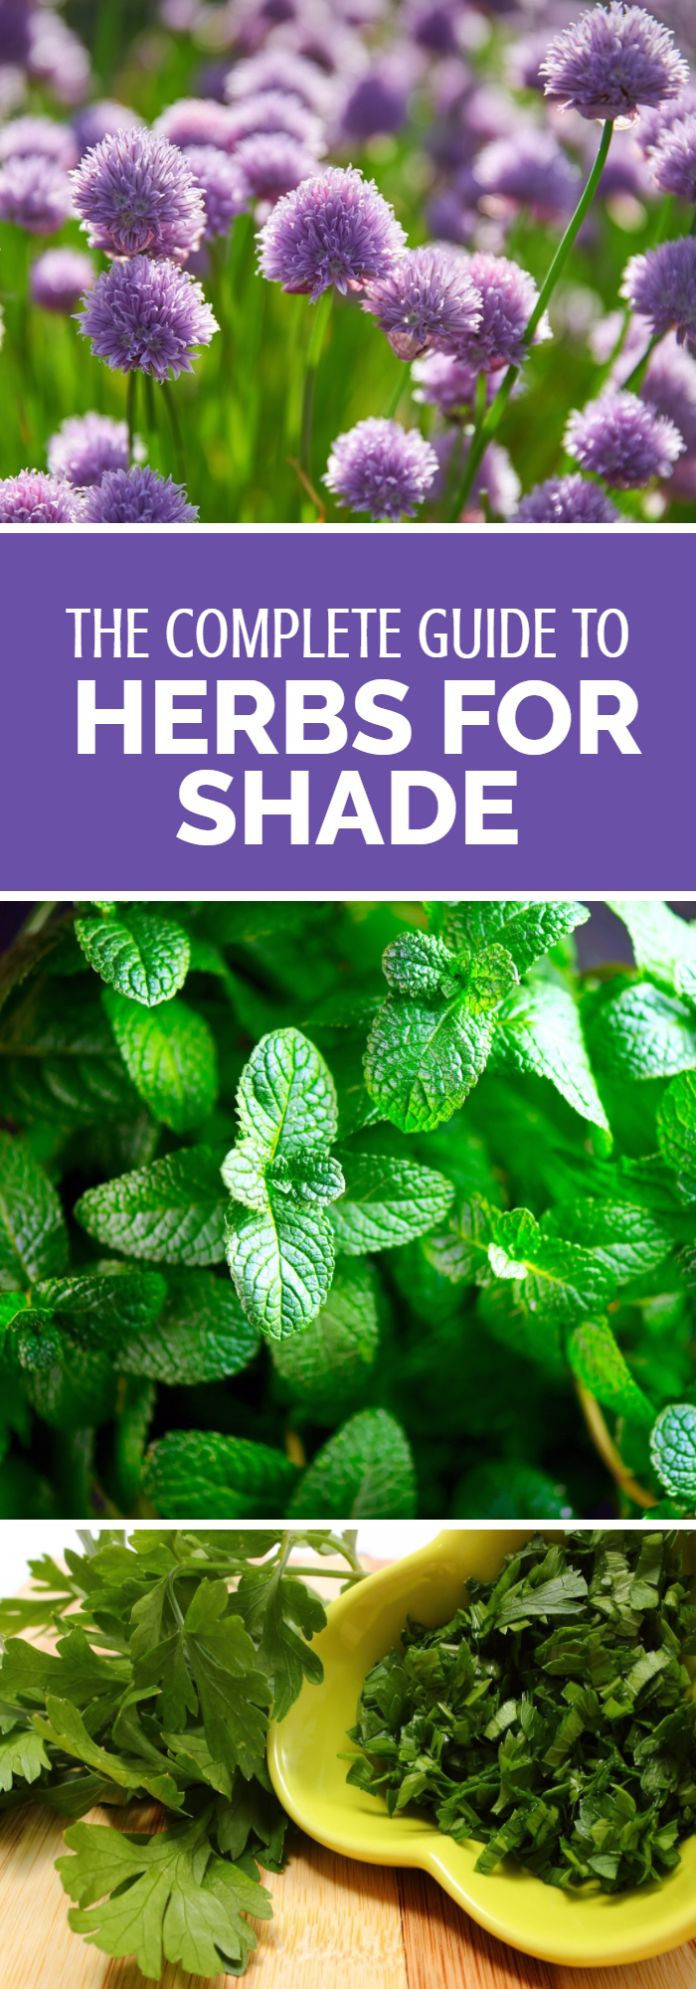 Trying to decide what to do with that shady patch in your garden? Why not try growing herbs! This article discusses a range of herbs that will grow successfully with only minimal sunlight - meaning you can fit them into any yard no matter what the conditions. Perfect even for beginner gardeners.